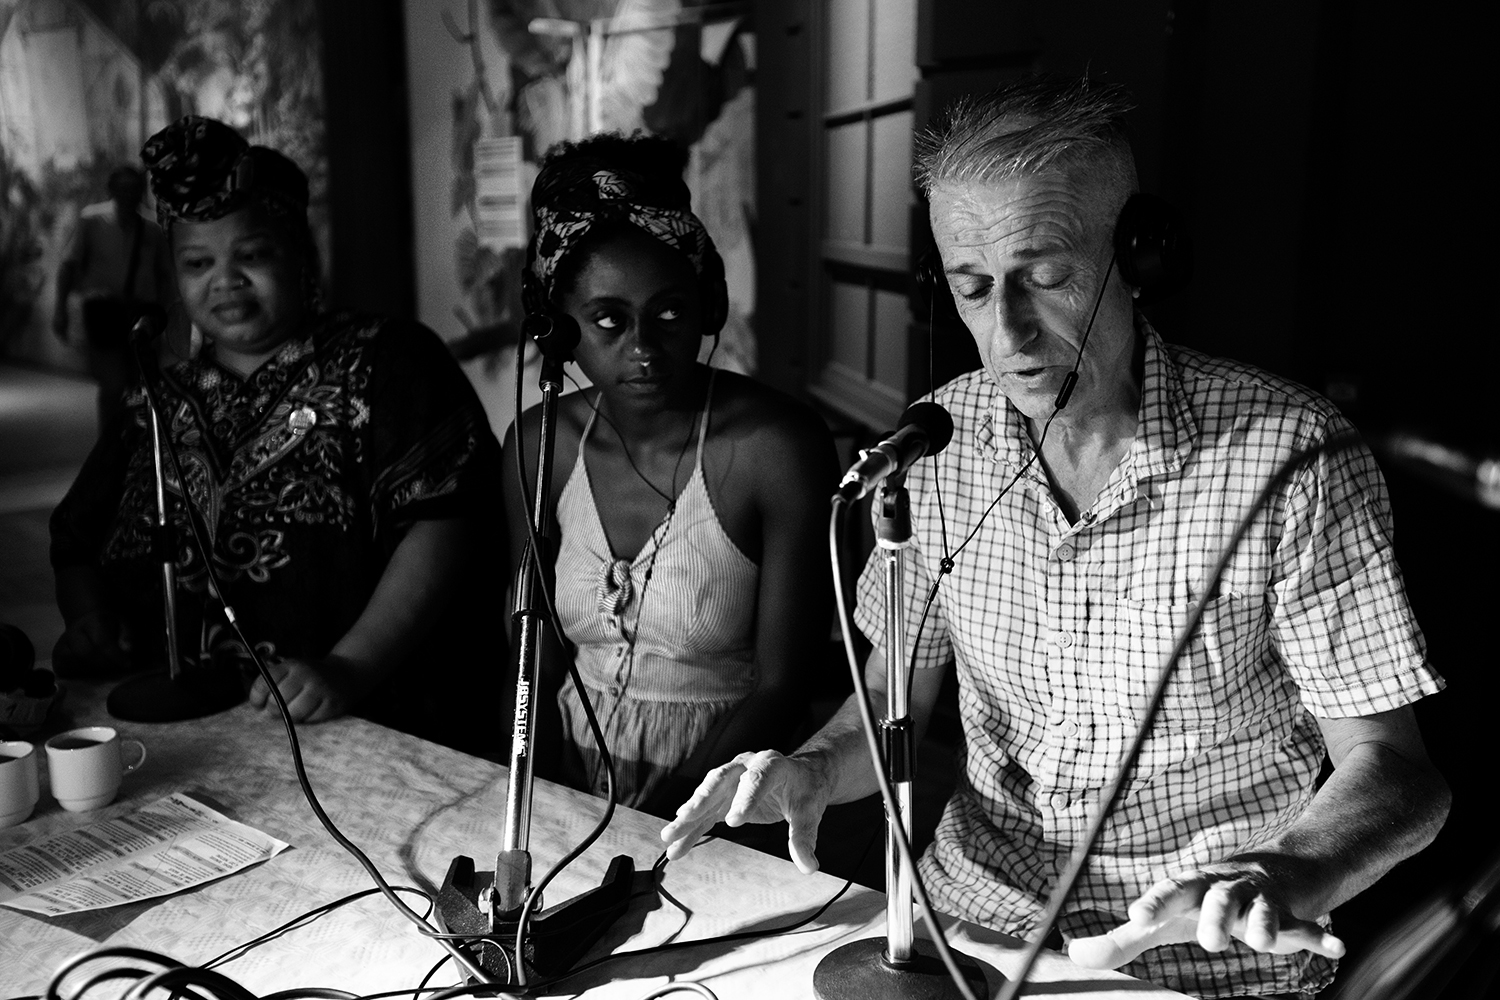 Steve Noble, Farida Amadou & Angel Bat Dawid - Interview by Laurent Orseau #2